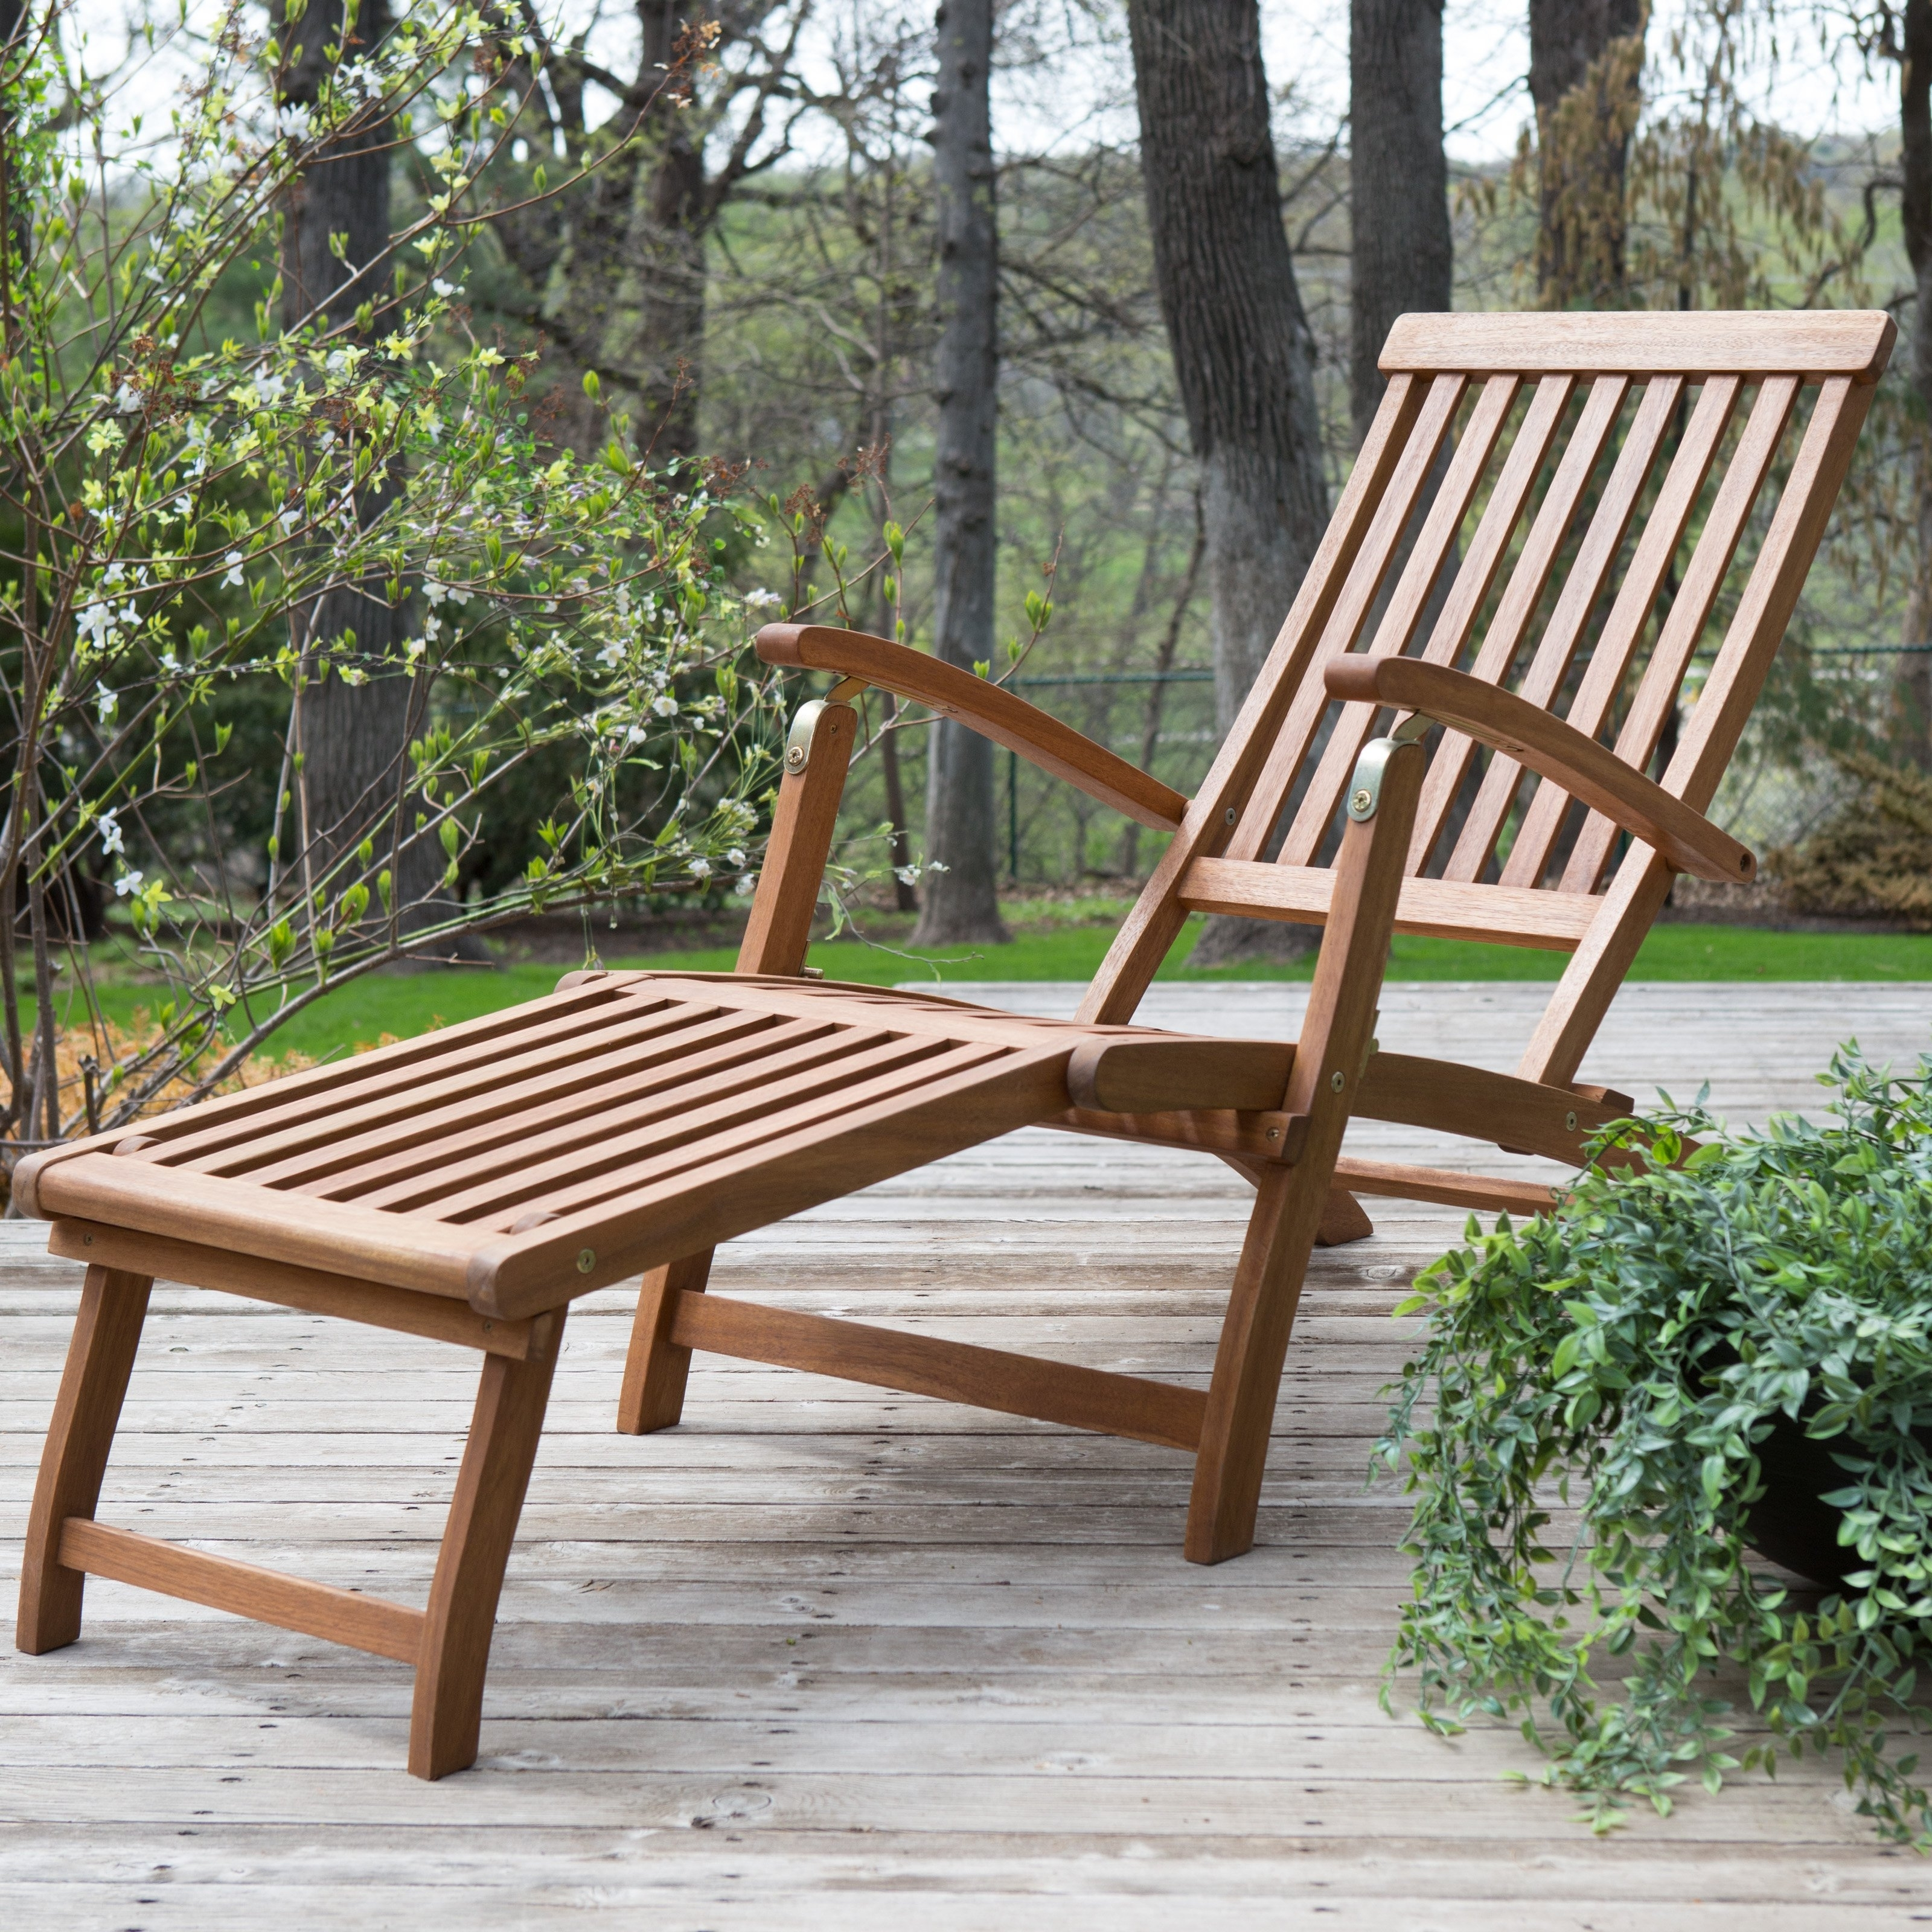 Wood Chaise Lounges With Regard To Fashionable Best Selling Home Decor Molokini Wood Outdoor Chaise Lounge—Set Of (View 14 of 15)